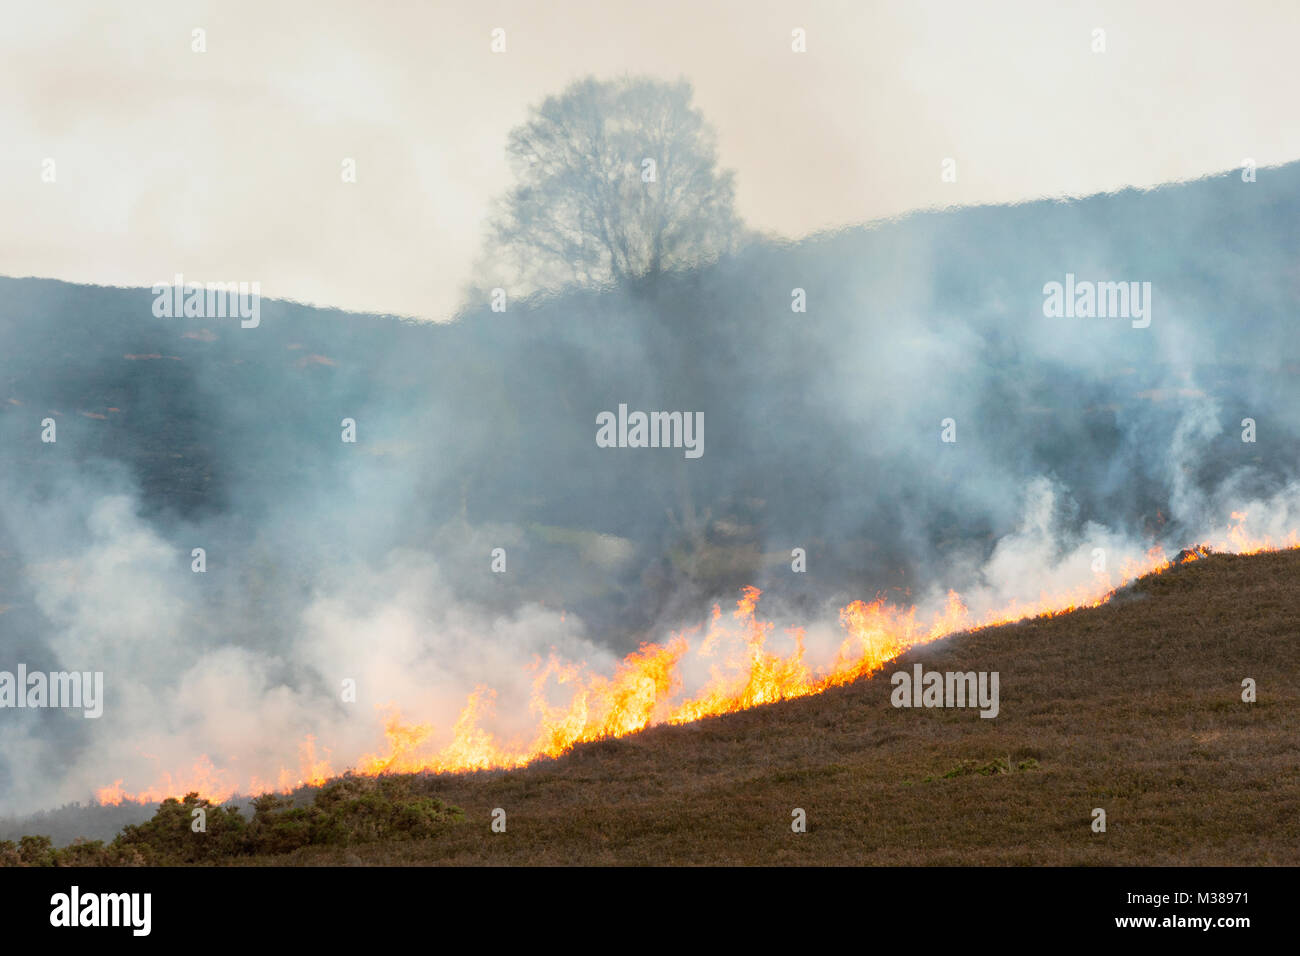 Heather on fire during a dry spell of weather in Highland Scotland. - Stock Image